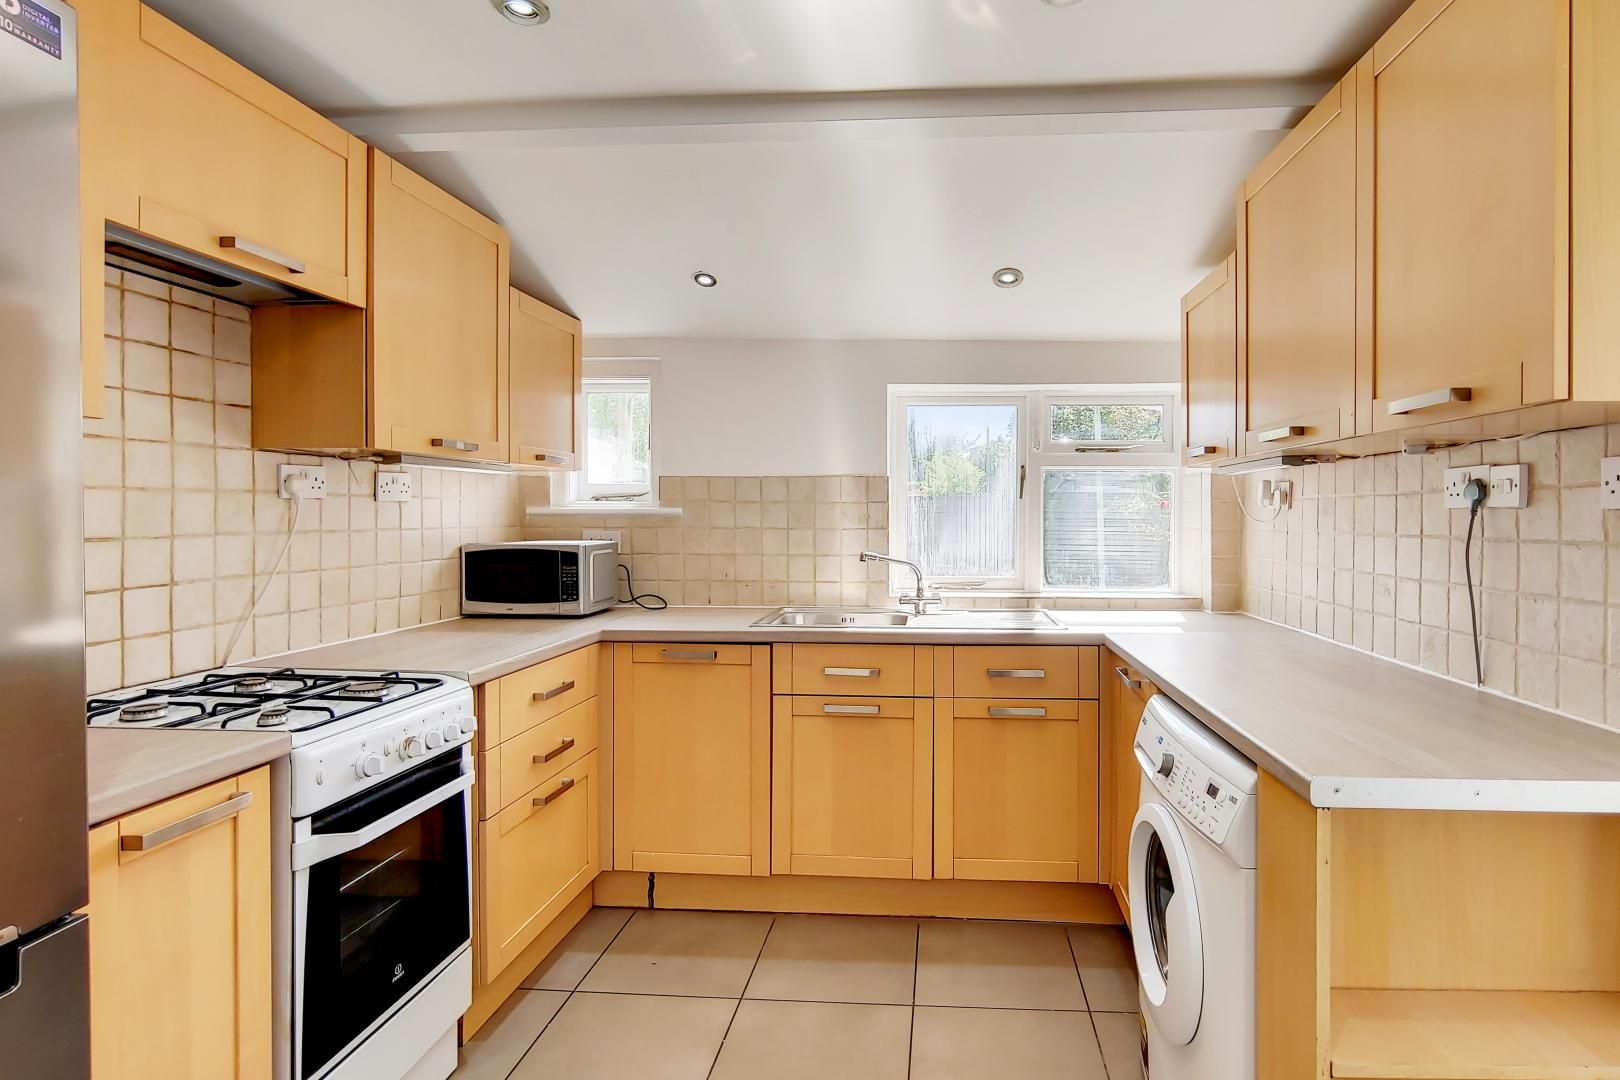 4 bed house to rent in Portway, E15